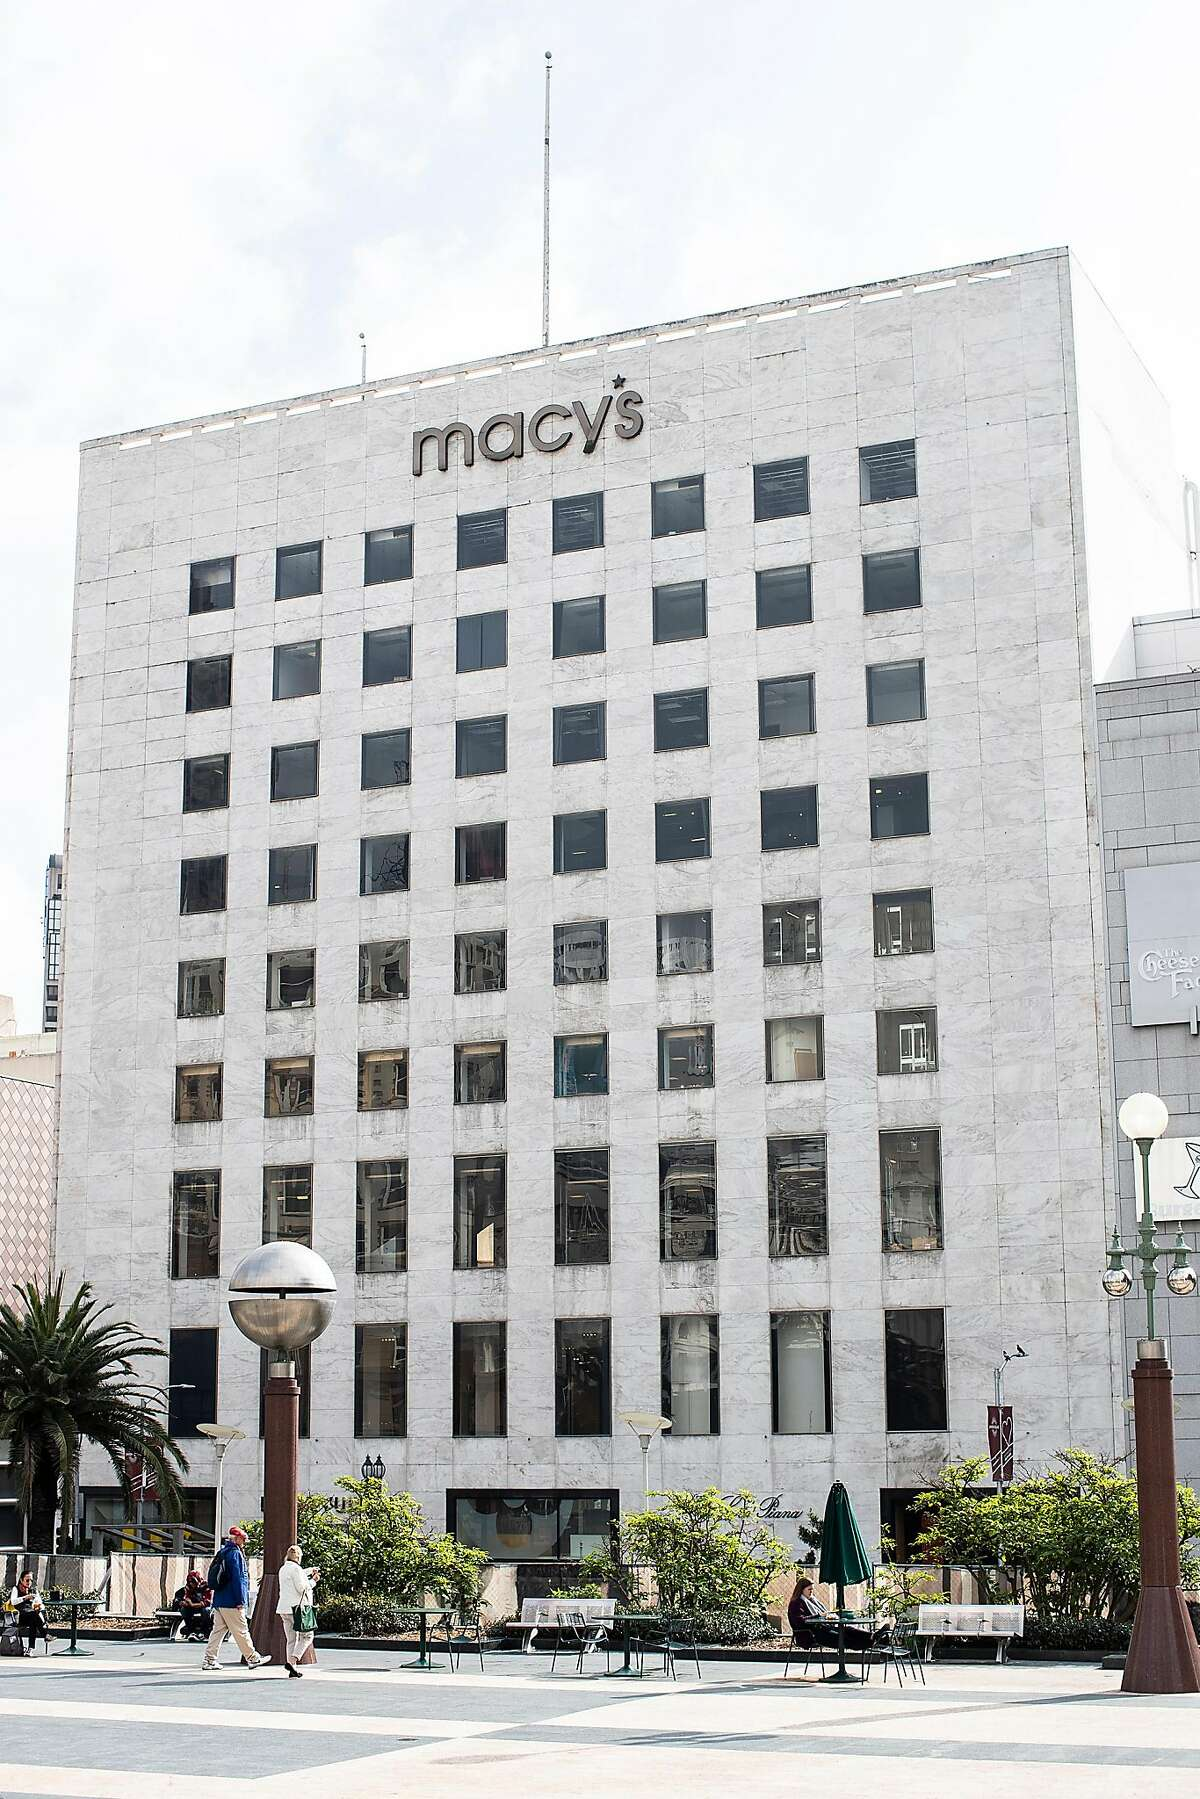 Macy's I. Magnin building is seen from Union Square in San Francisco, Calif. on Thursday, Jan. 31, 2019.